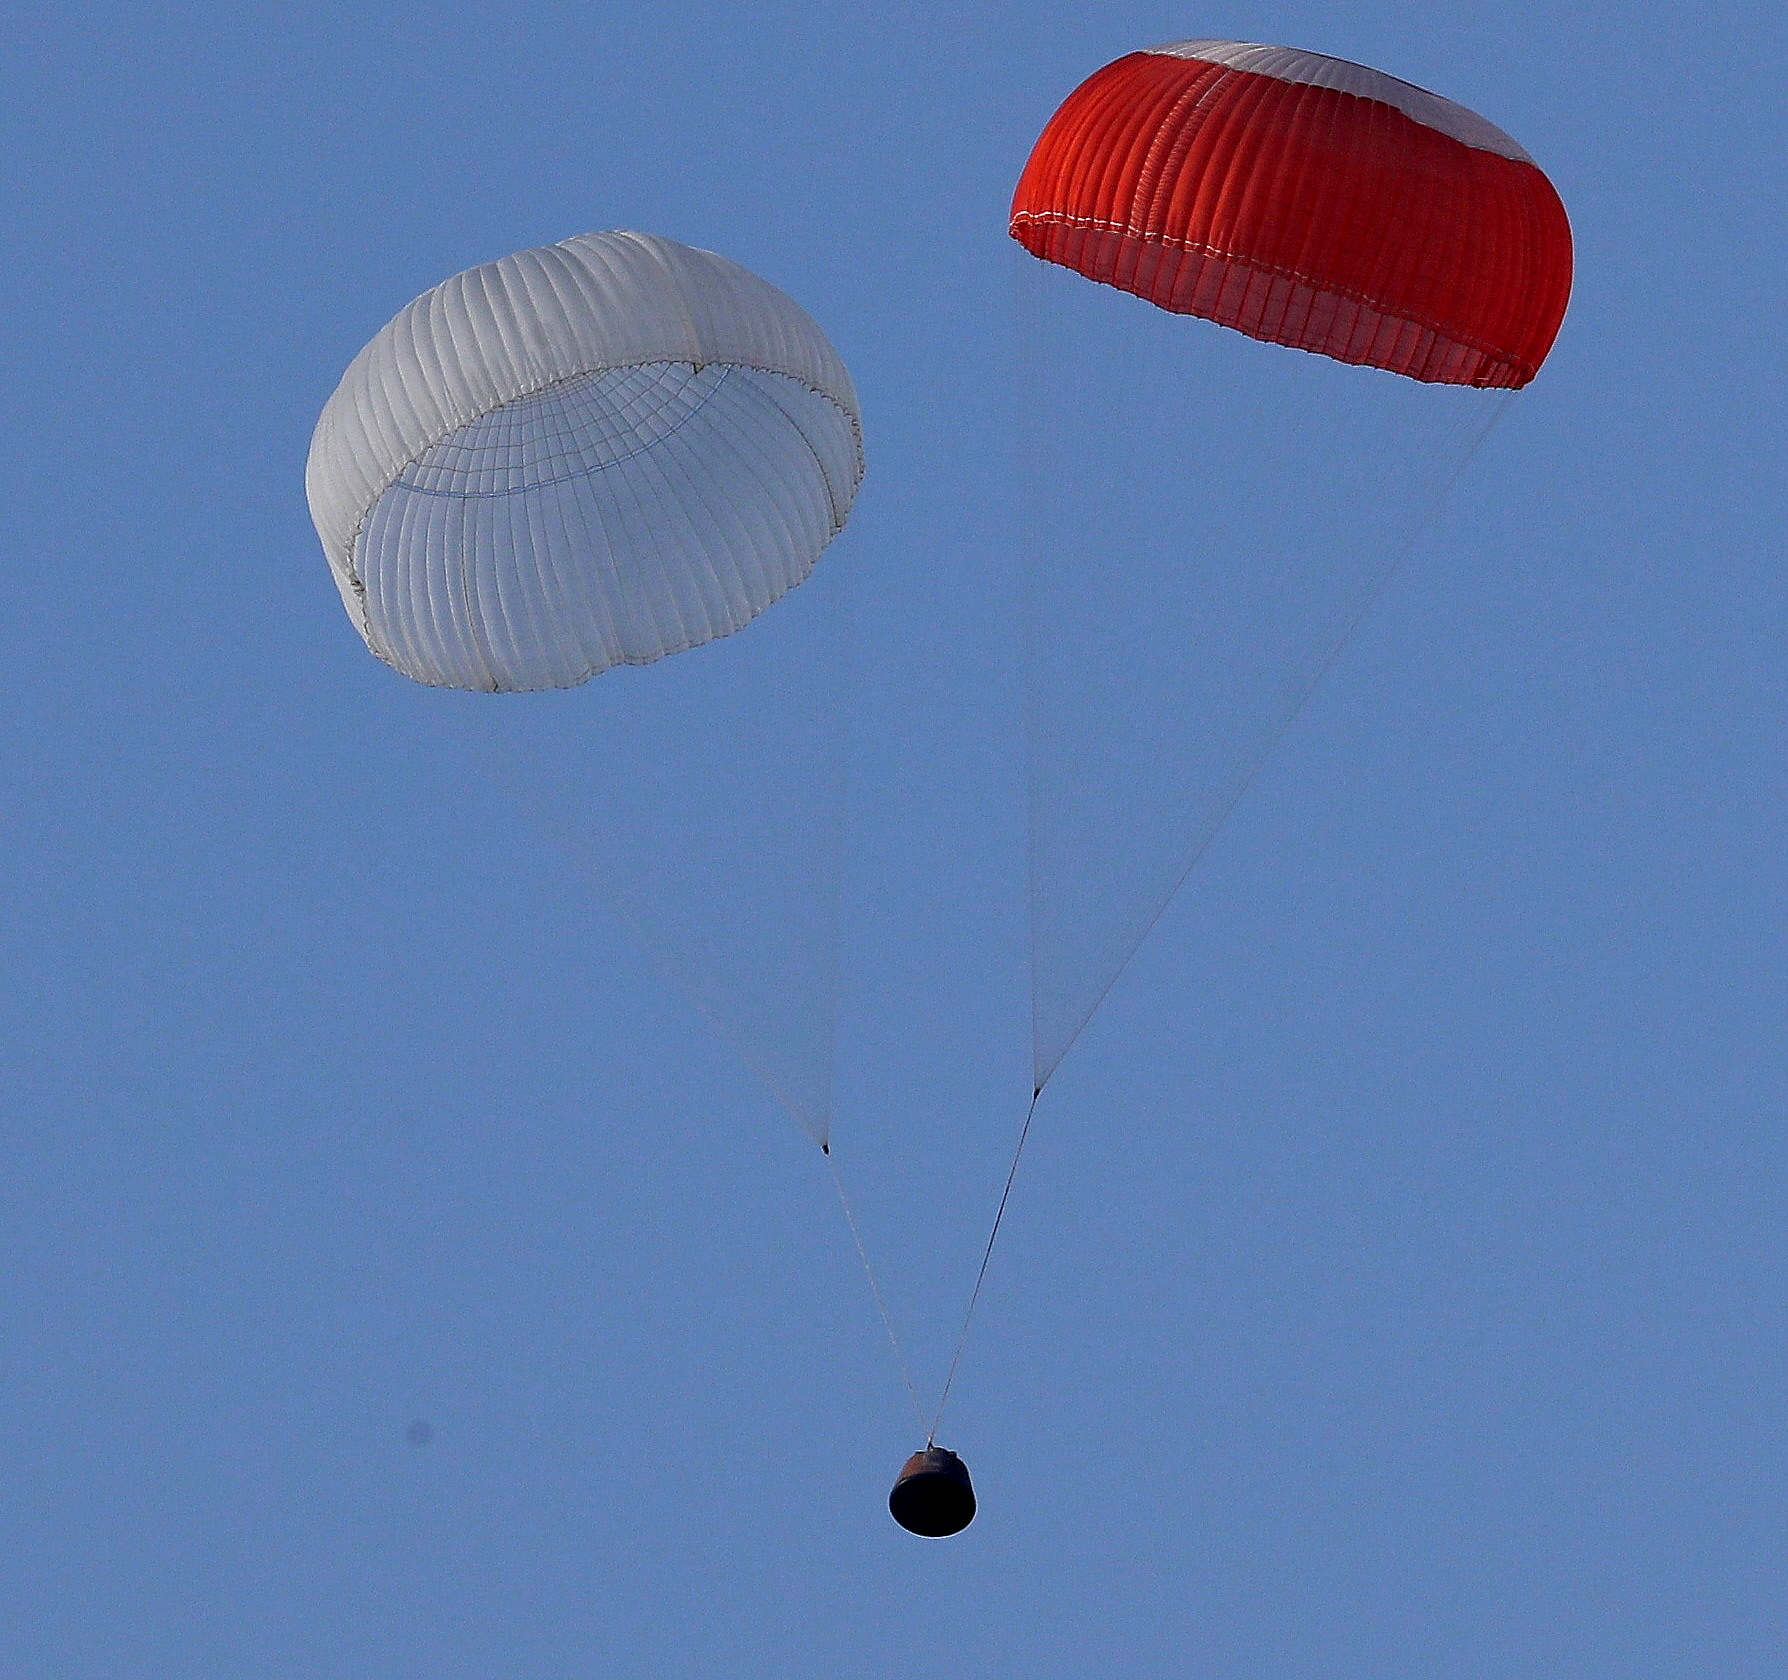 The Crew Module, part the Crew Escape System (CES), floating back to earth under its parachutes over the Bay of Bengal about 2.9 km from the  Satish Dhawan Space Centre, Sriharikota, during a test conducted by the Indian Space Research Organisation (ISRO), in Andhra Pradesh on July 05, 2018.